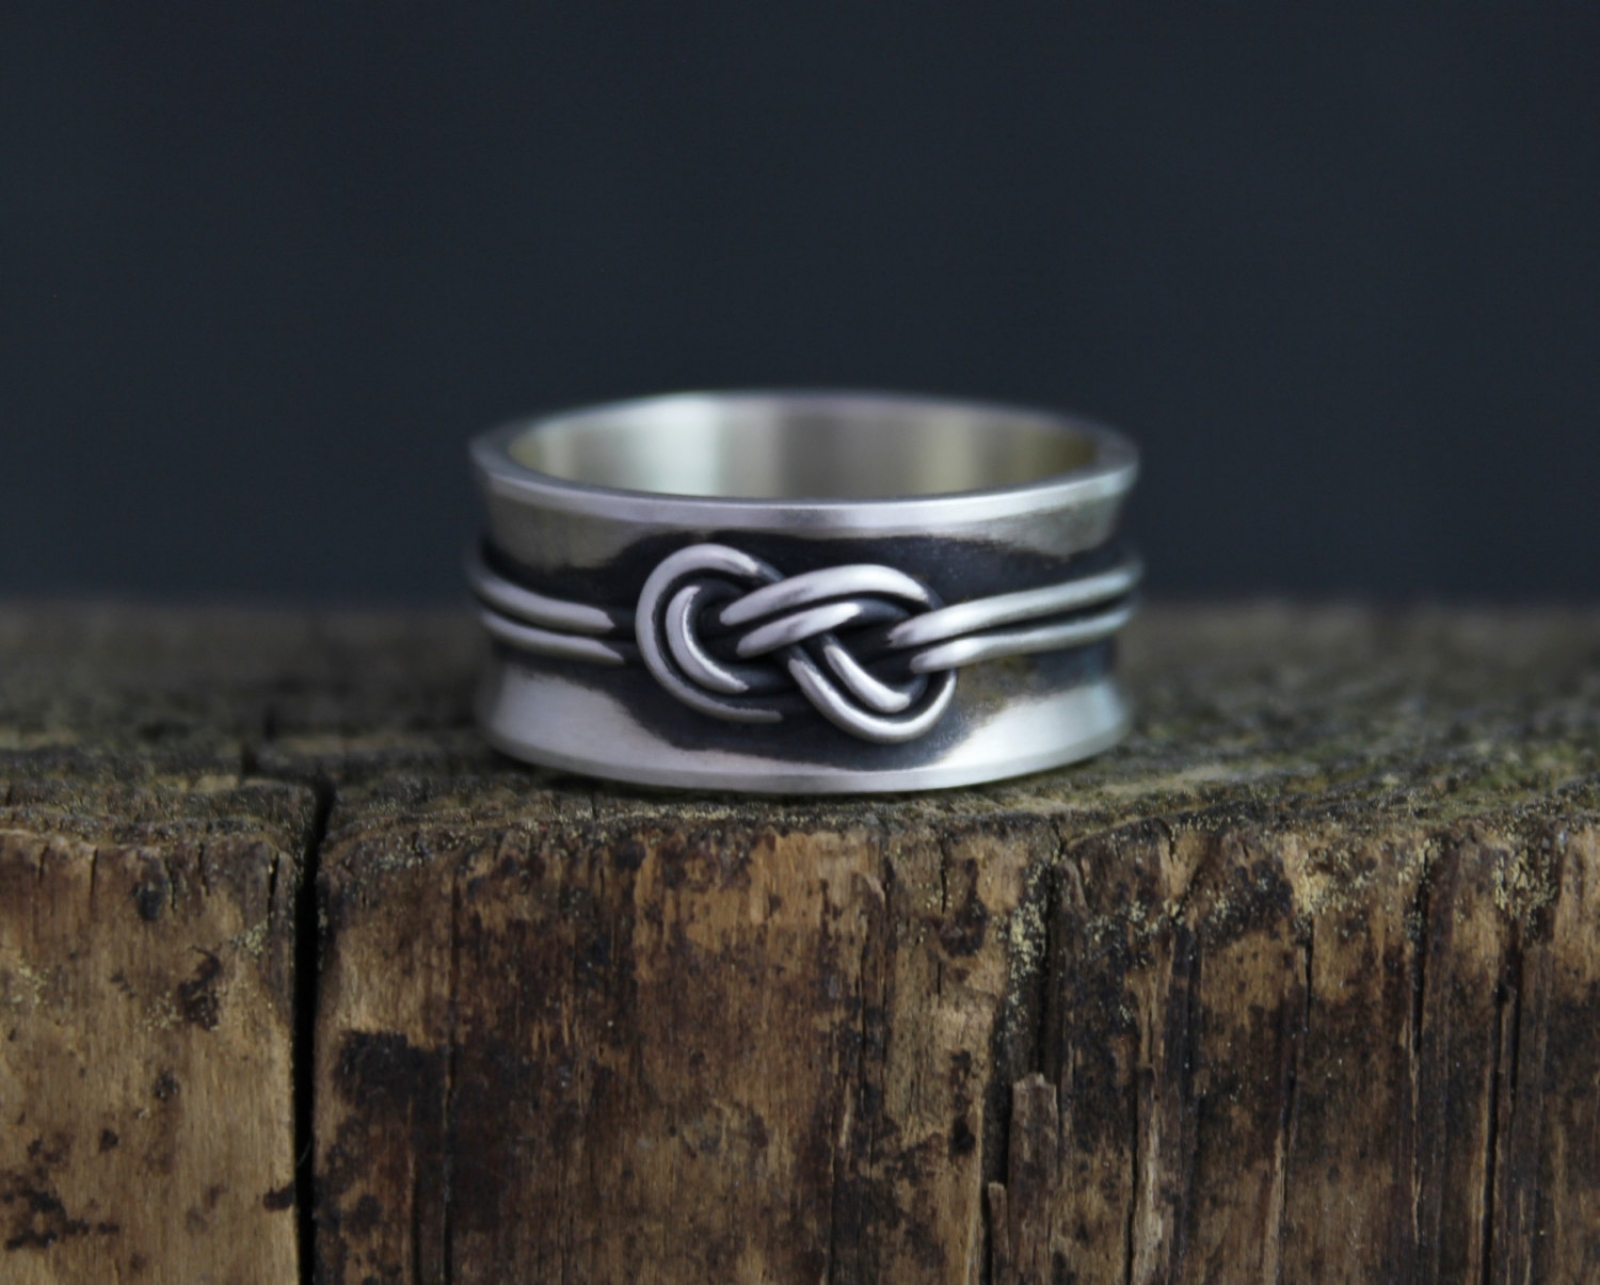 Double Love Knot Ring Figure Eight Knot Ring Infinity Knot Ring 10mm Wide Band Climbers Knot Oxidized Silver Band Ready To Ship Sz 10 Theresa Pytell Jewelry Design